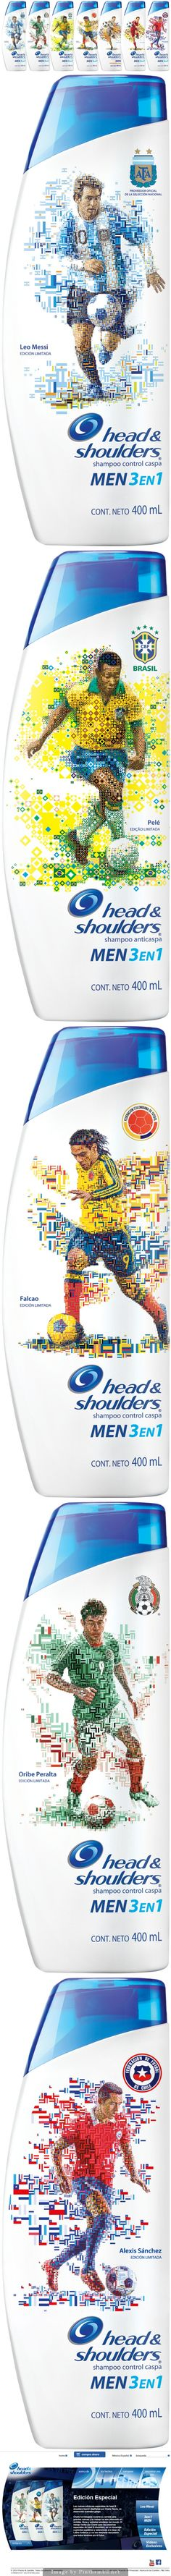 Head  Shoulders Limited Edition collectable packaging of Head  Shoulders for the World Cup in Brazil. (Unfortunately, they think the Pele's still playing in Brazil team!).